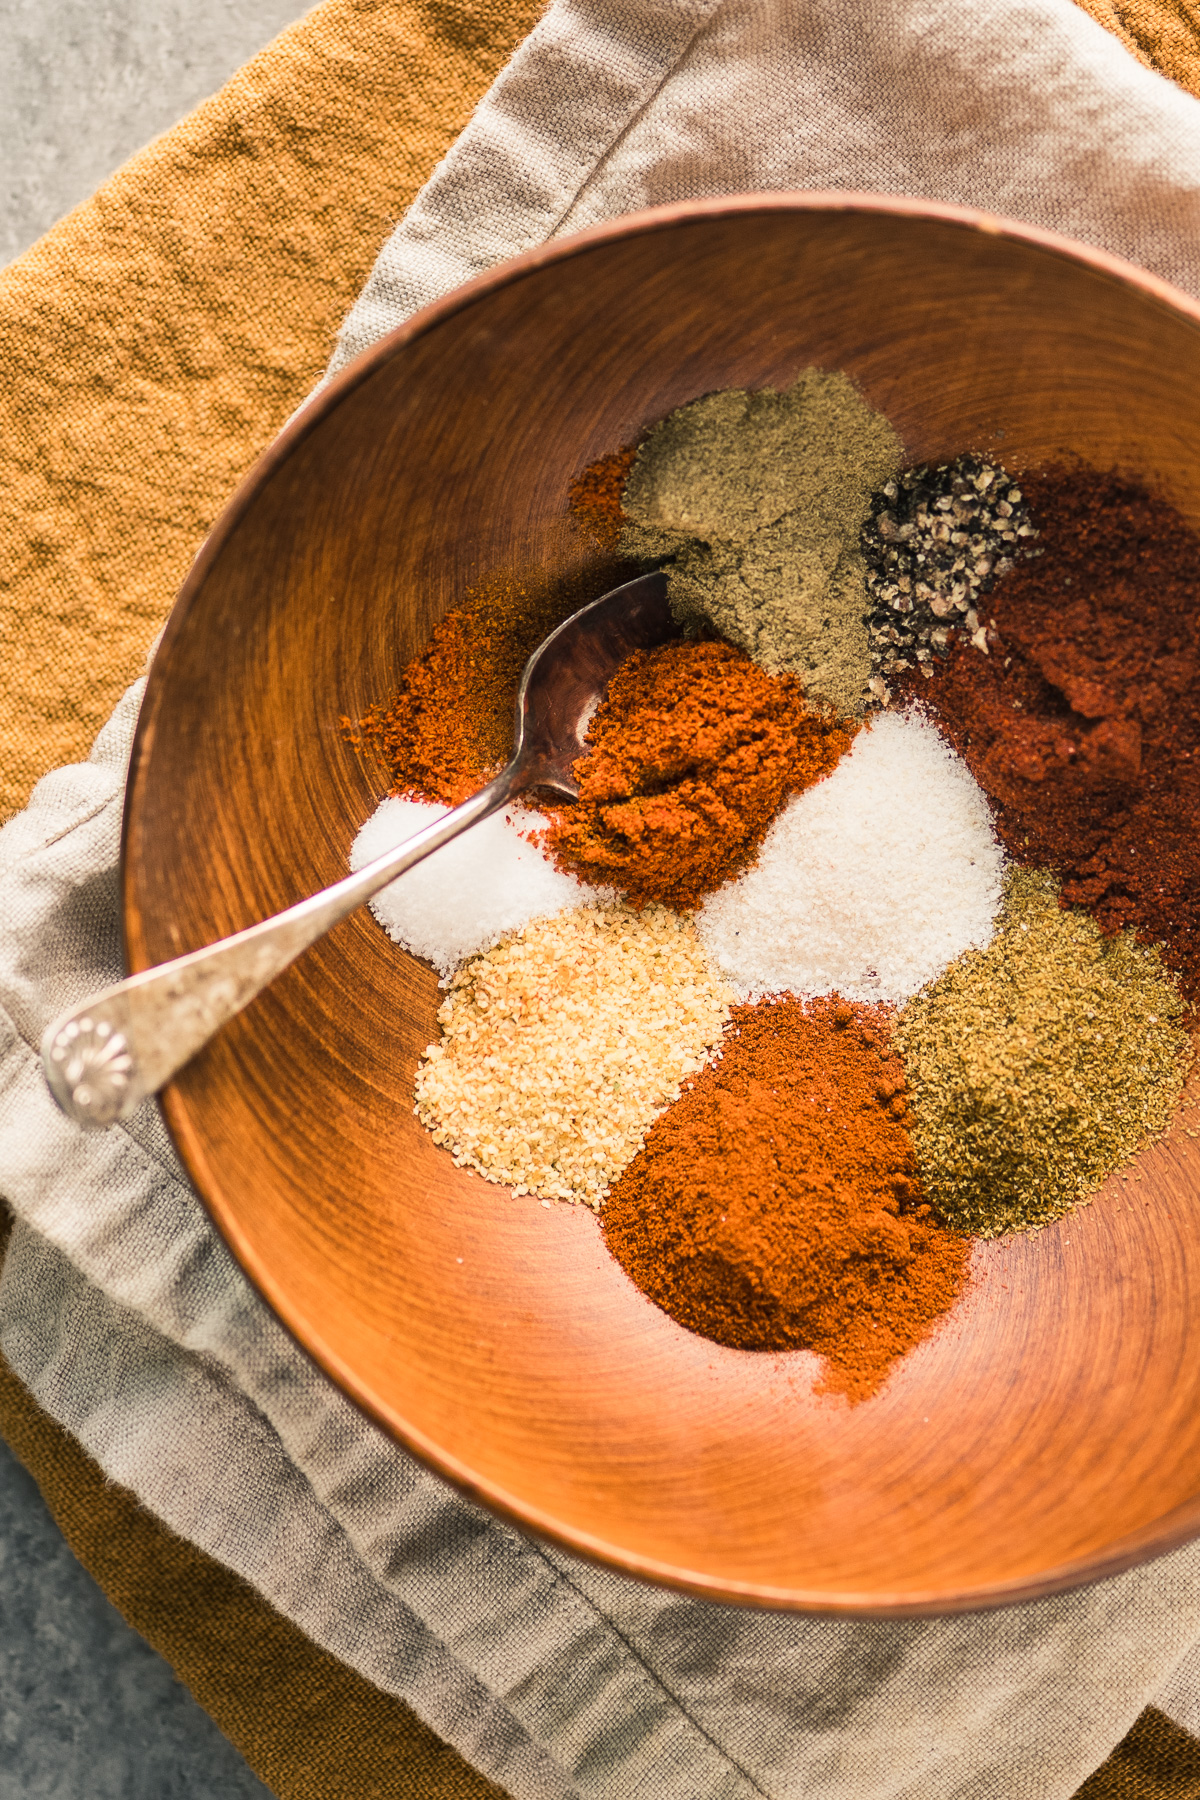 Making homemade fajita spice mix